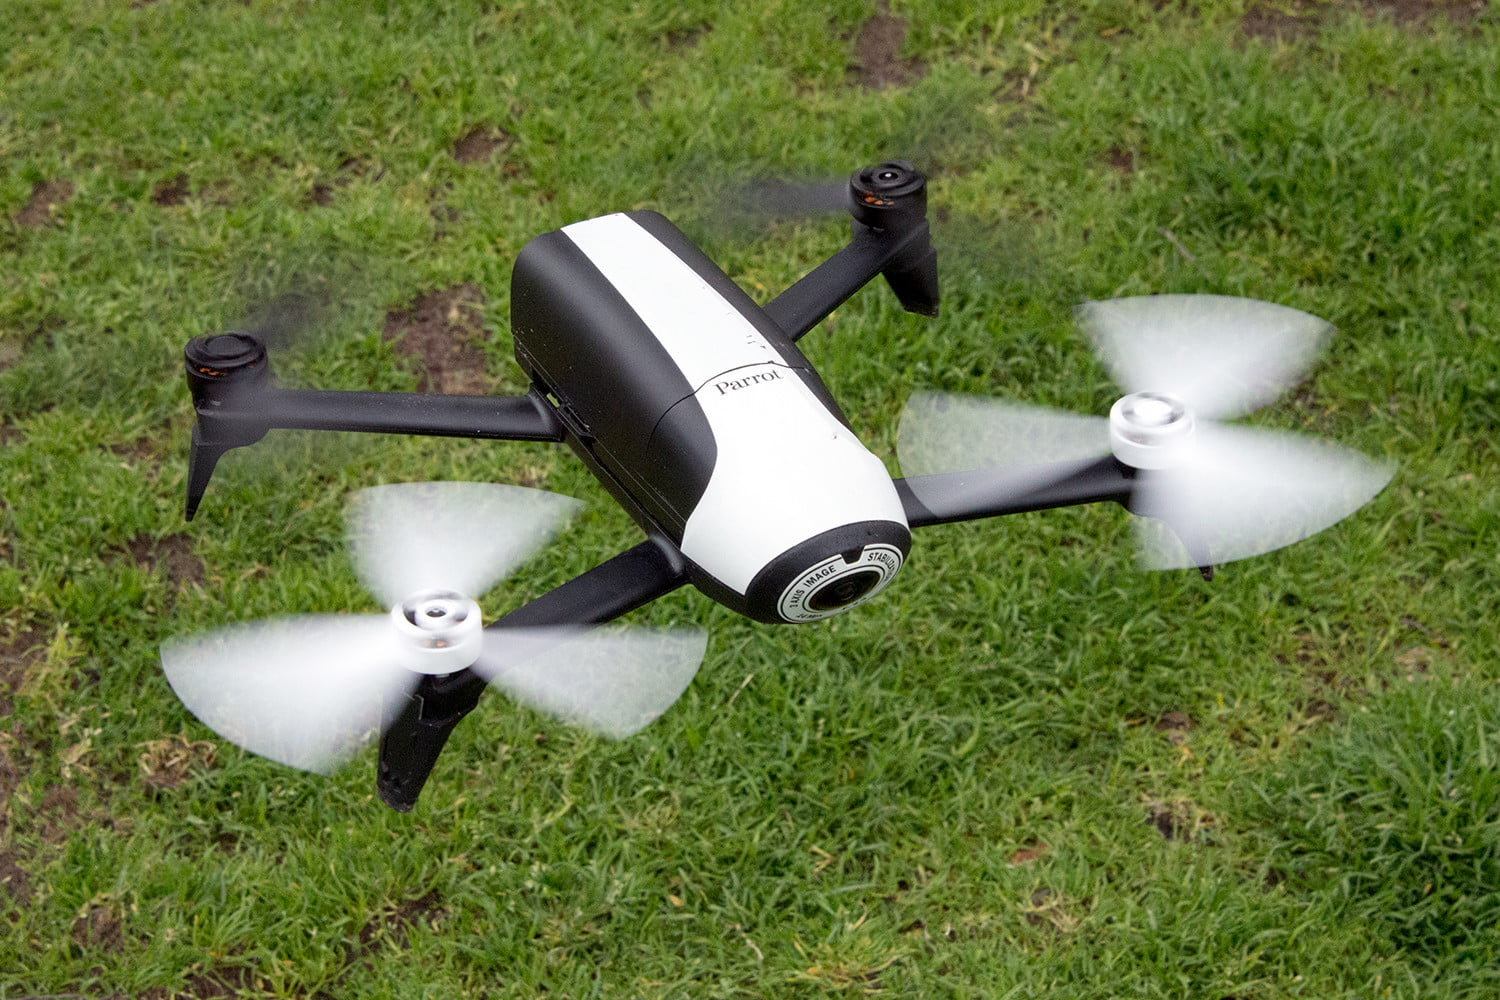 Parrot Bebop 2 Fpv Review Digital Trends